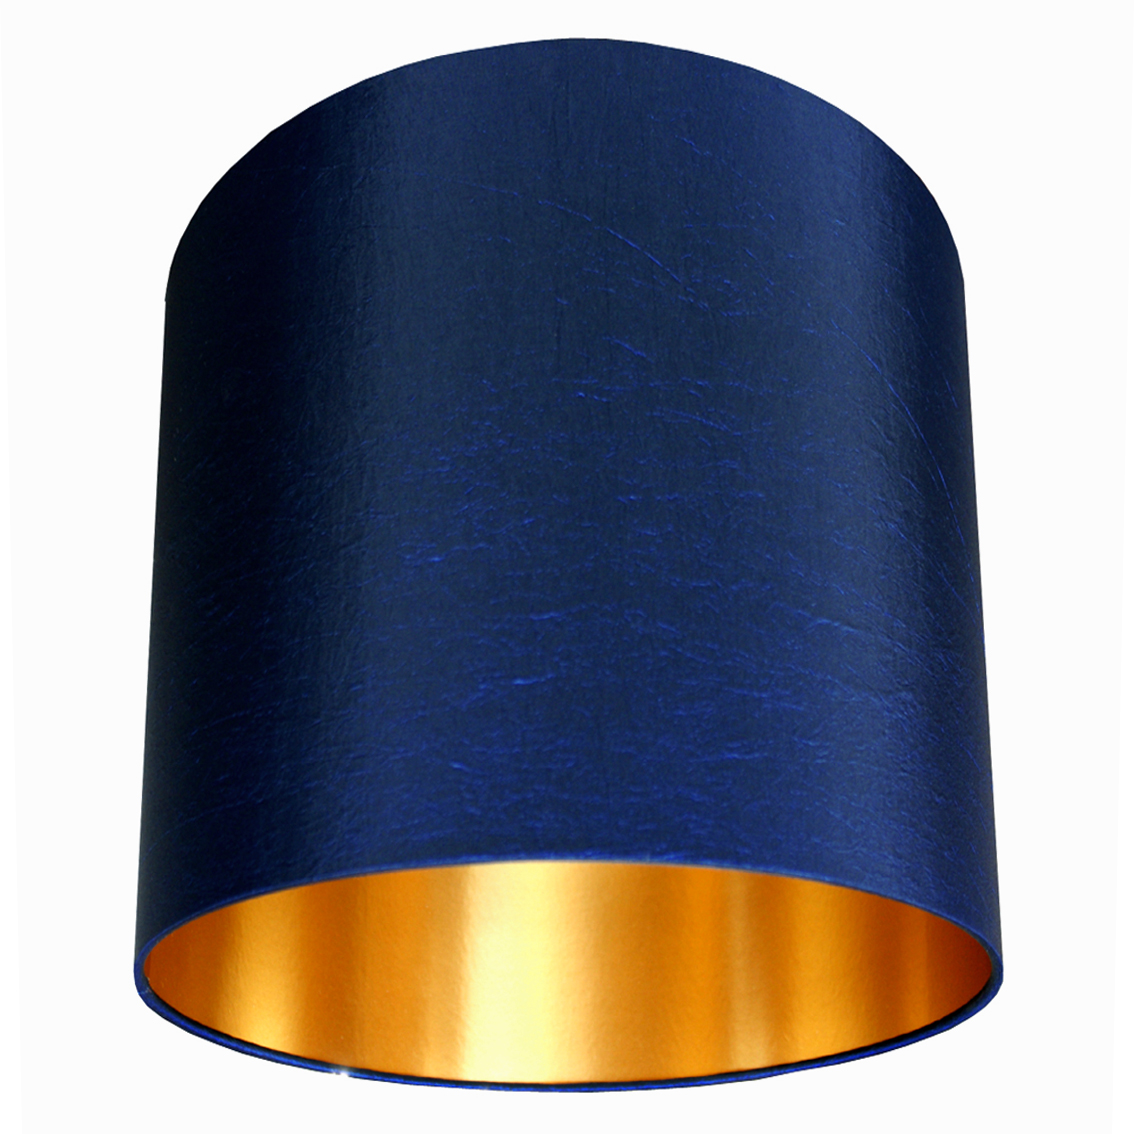 Midnight blue handmade lampshade with gold lining love frankie lampshade proportion guide midnight blue and gold lampshade aloadofball Image collections